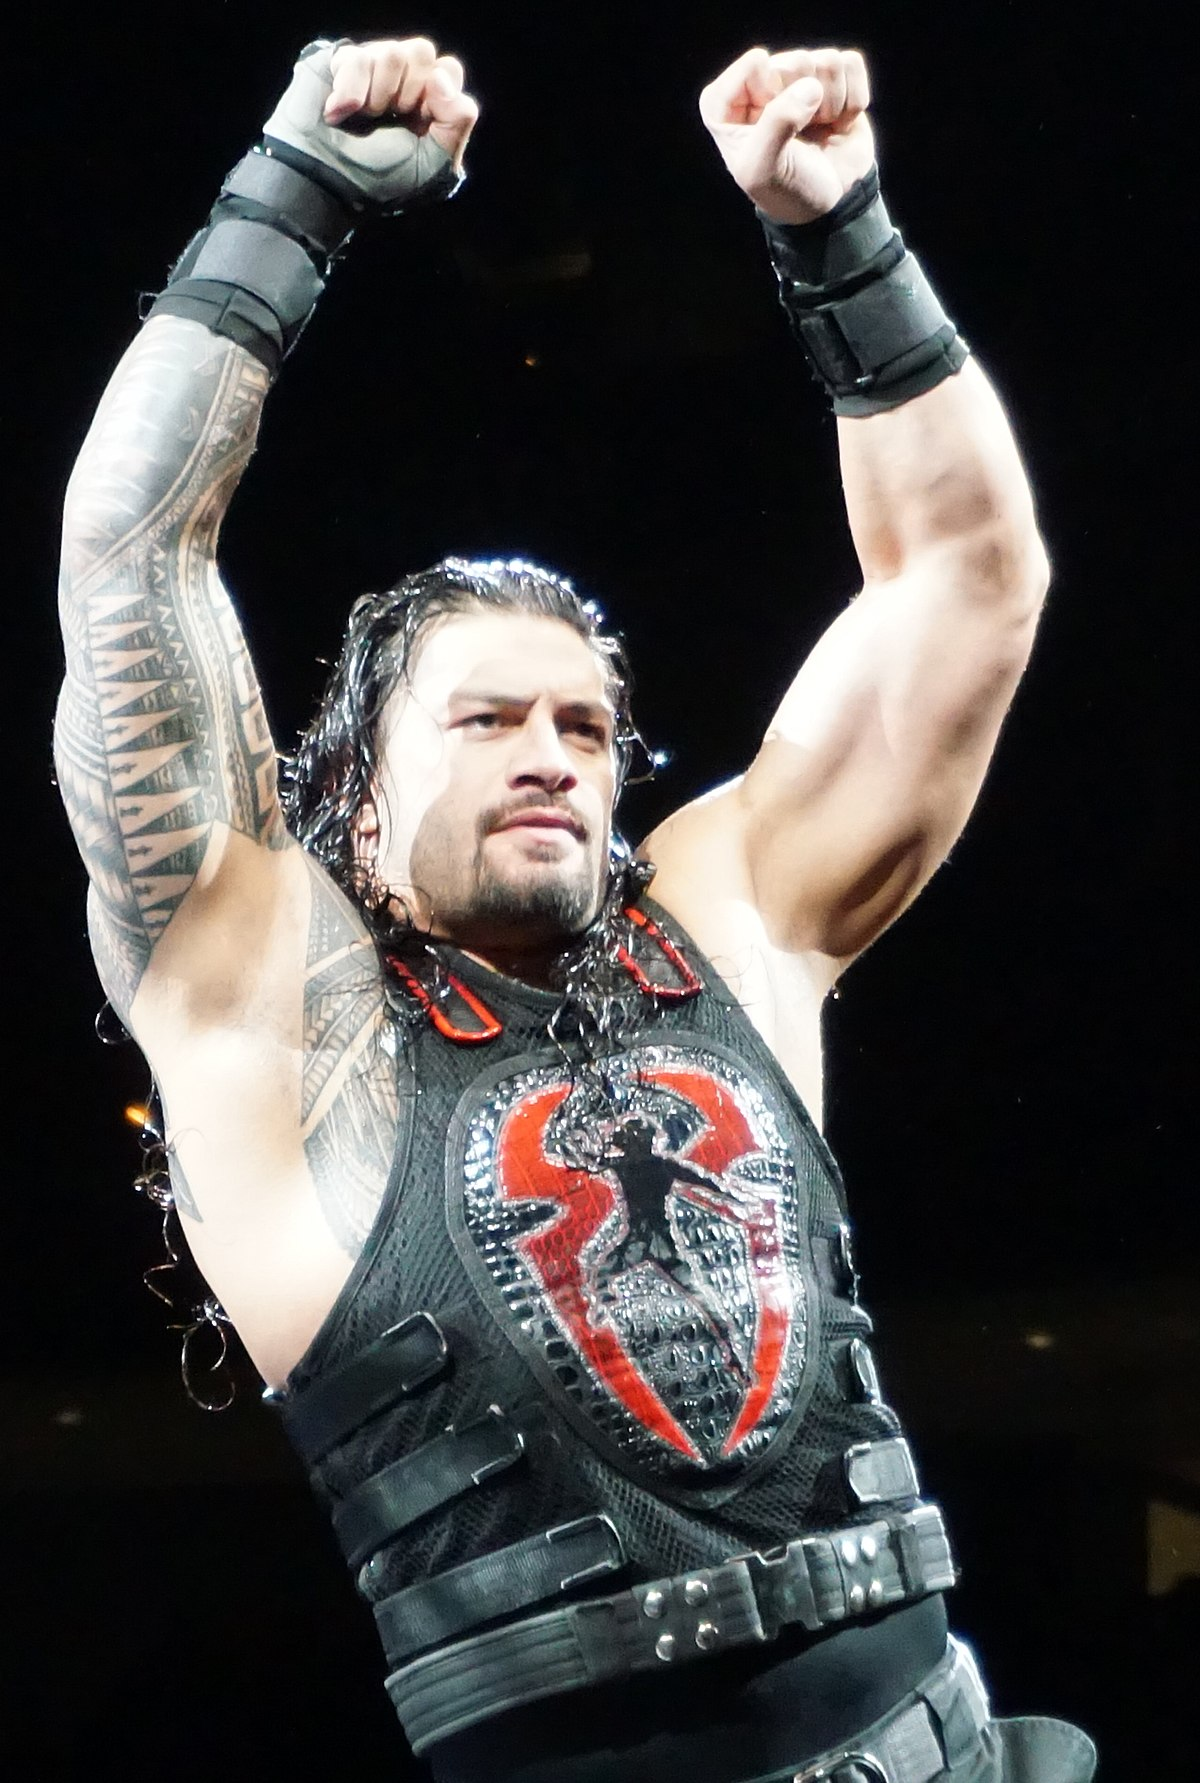 persona and reception of roman reigns wikipedia